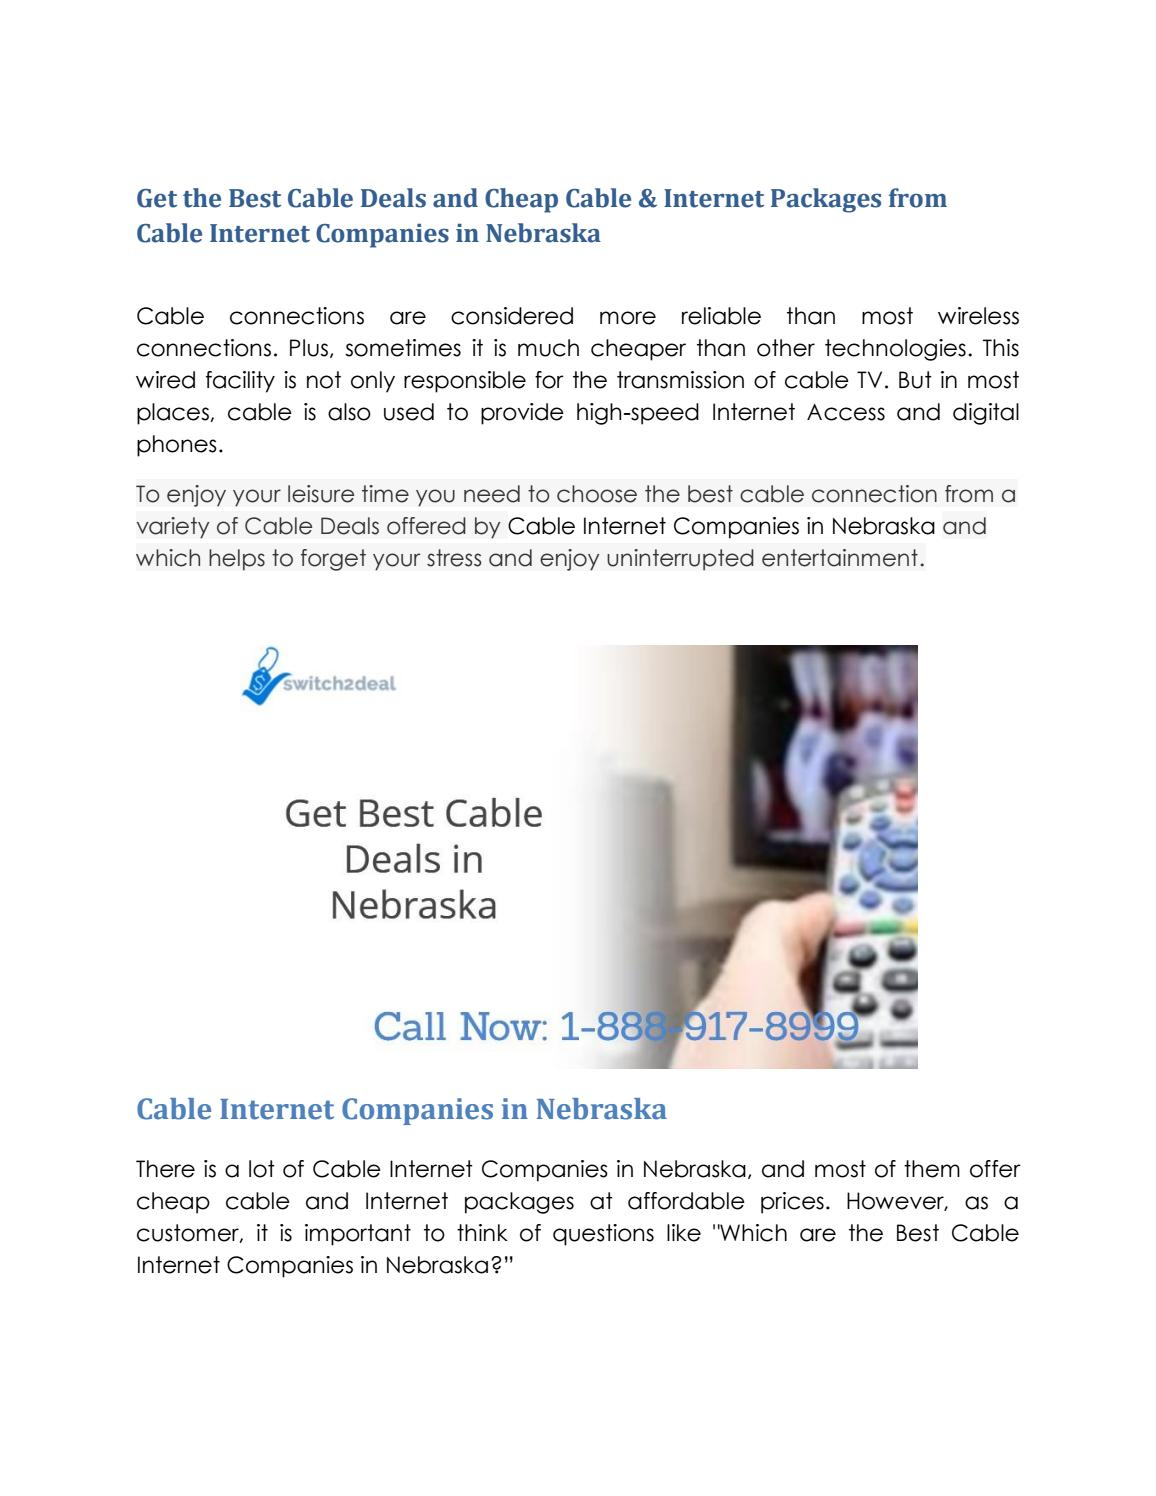 Get the Best Cable Deals from Cable Internet Companies in